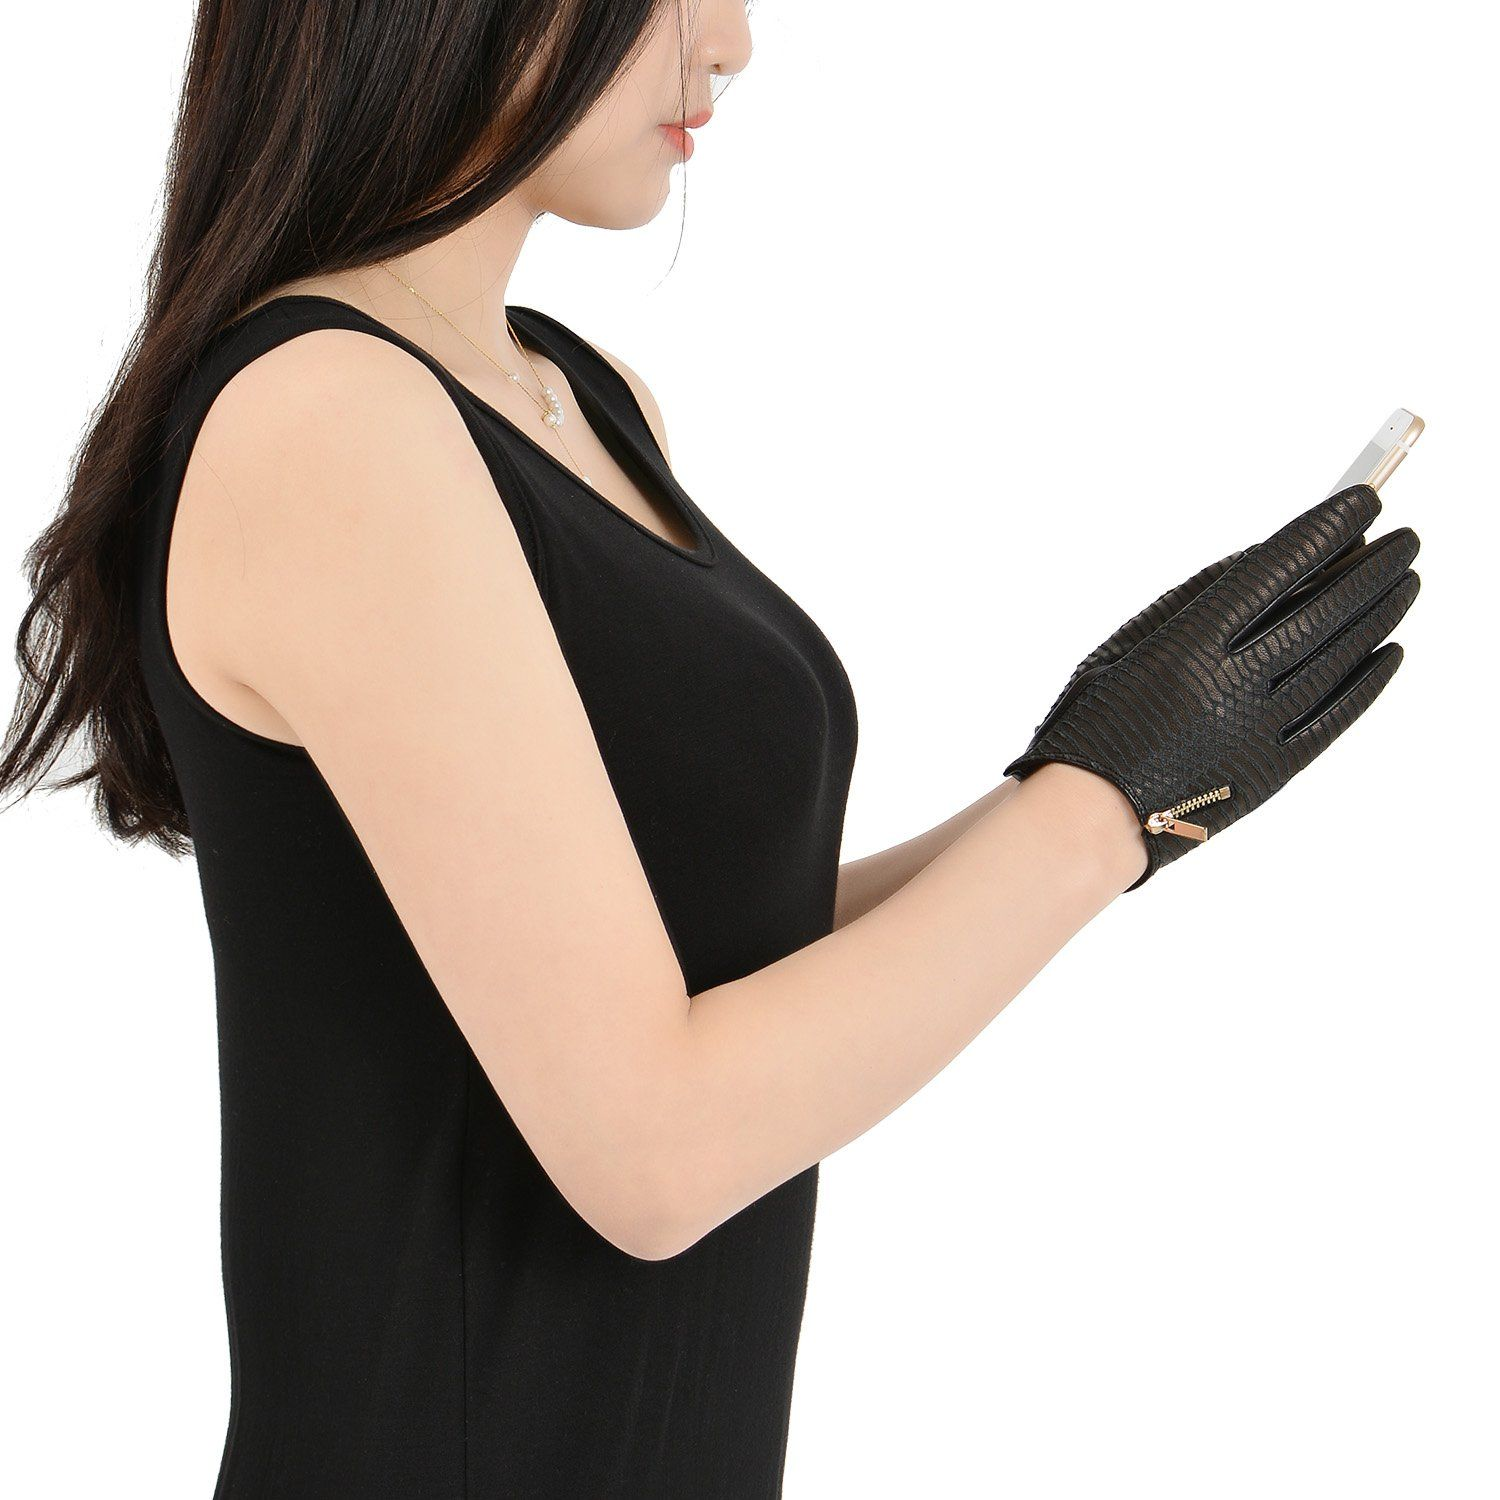 Leather driving gloves with zipper - Fioretto Womens Winter Sexy Snake Leather Driving Gloves Motorcycle Gloves With Metal Zipper Slim Fitting